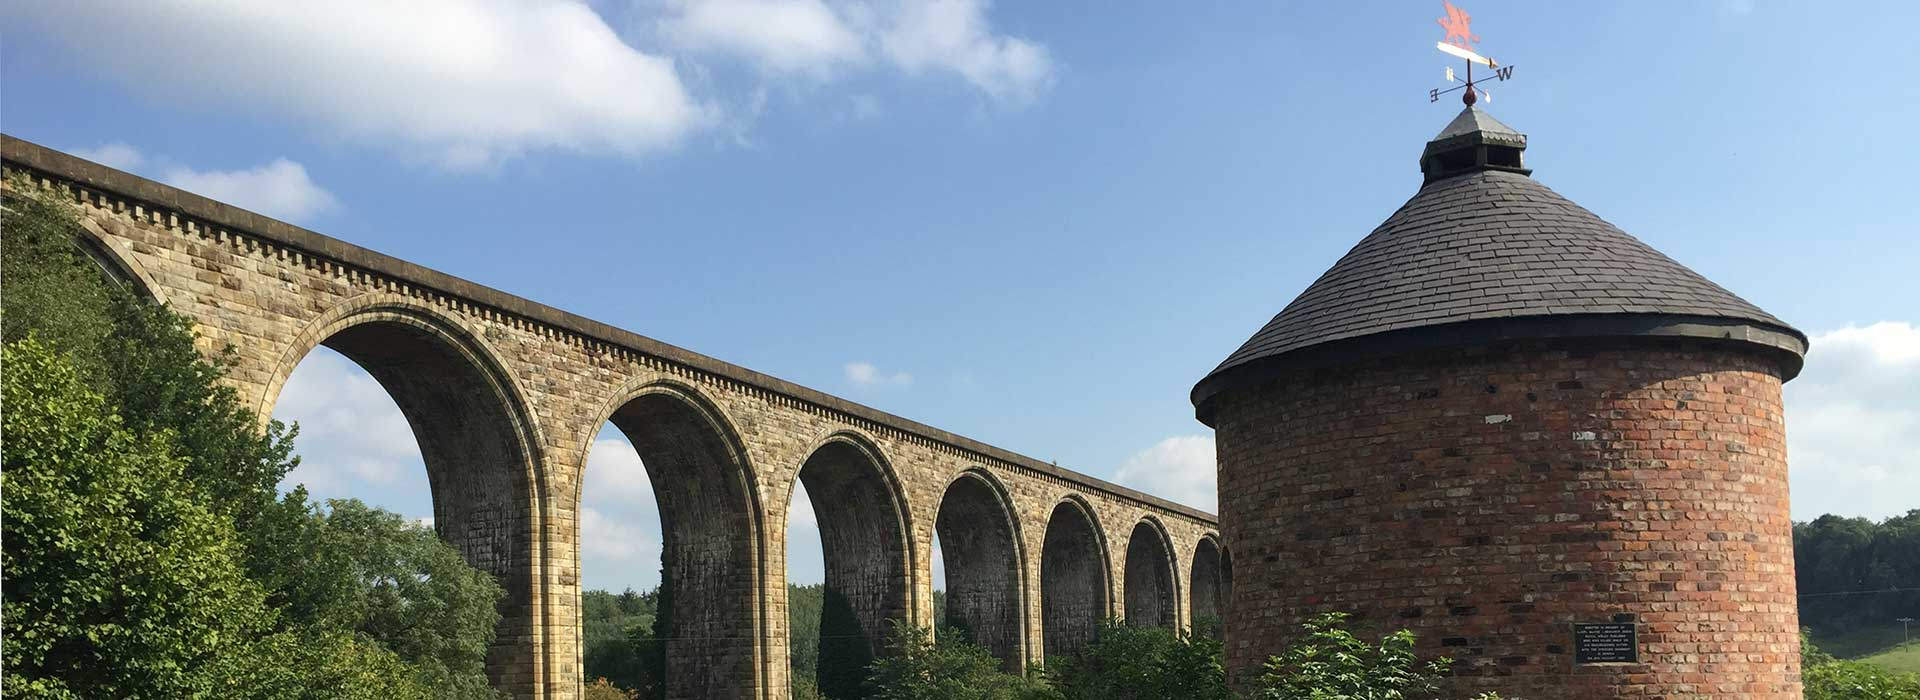 The Dovecote & Viaduct